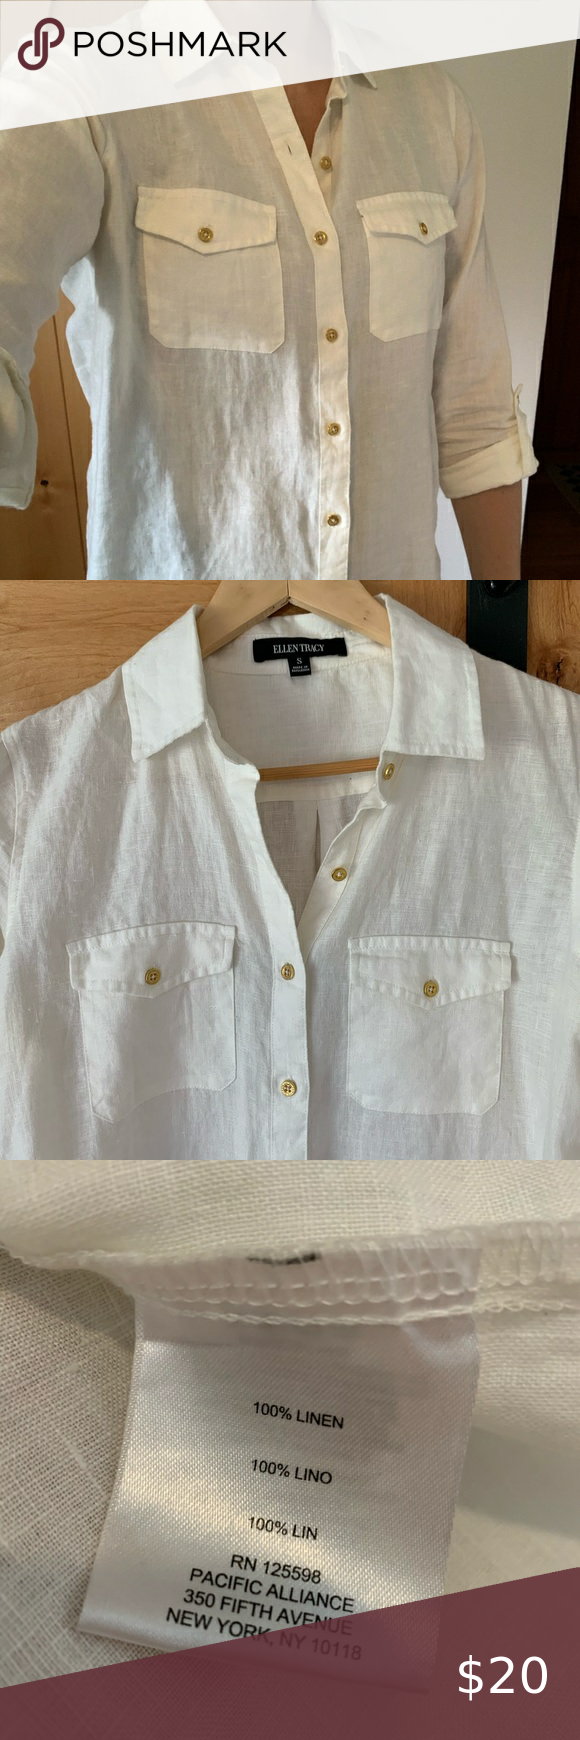 White Linen Button Down Shirt With Gold Buttons Linen Shirt Dress Button Down Shirt Clothes Design [ 1740 x 580 Pixel ]